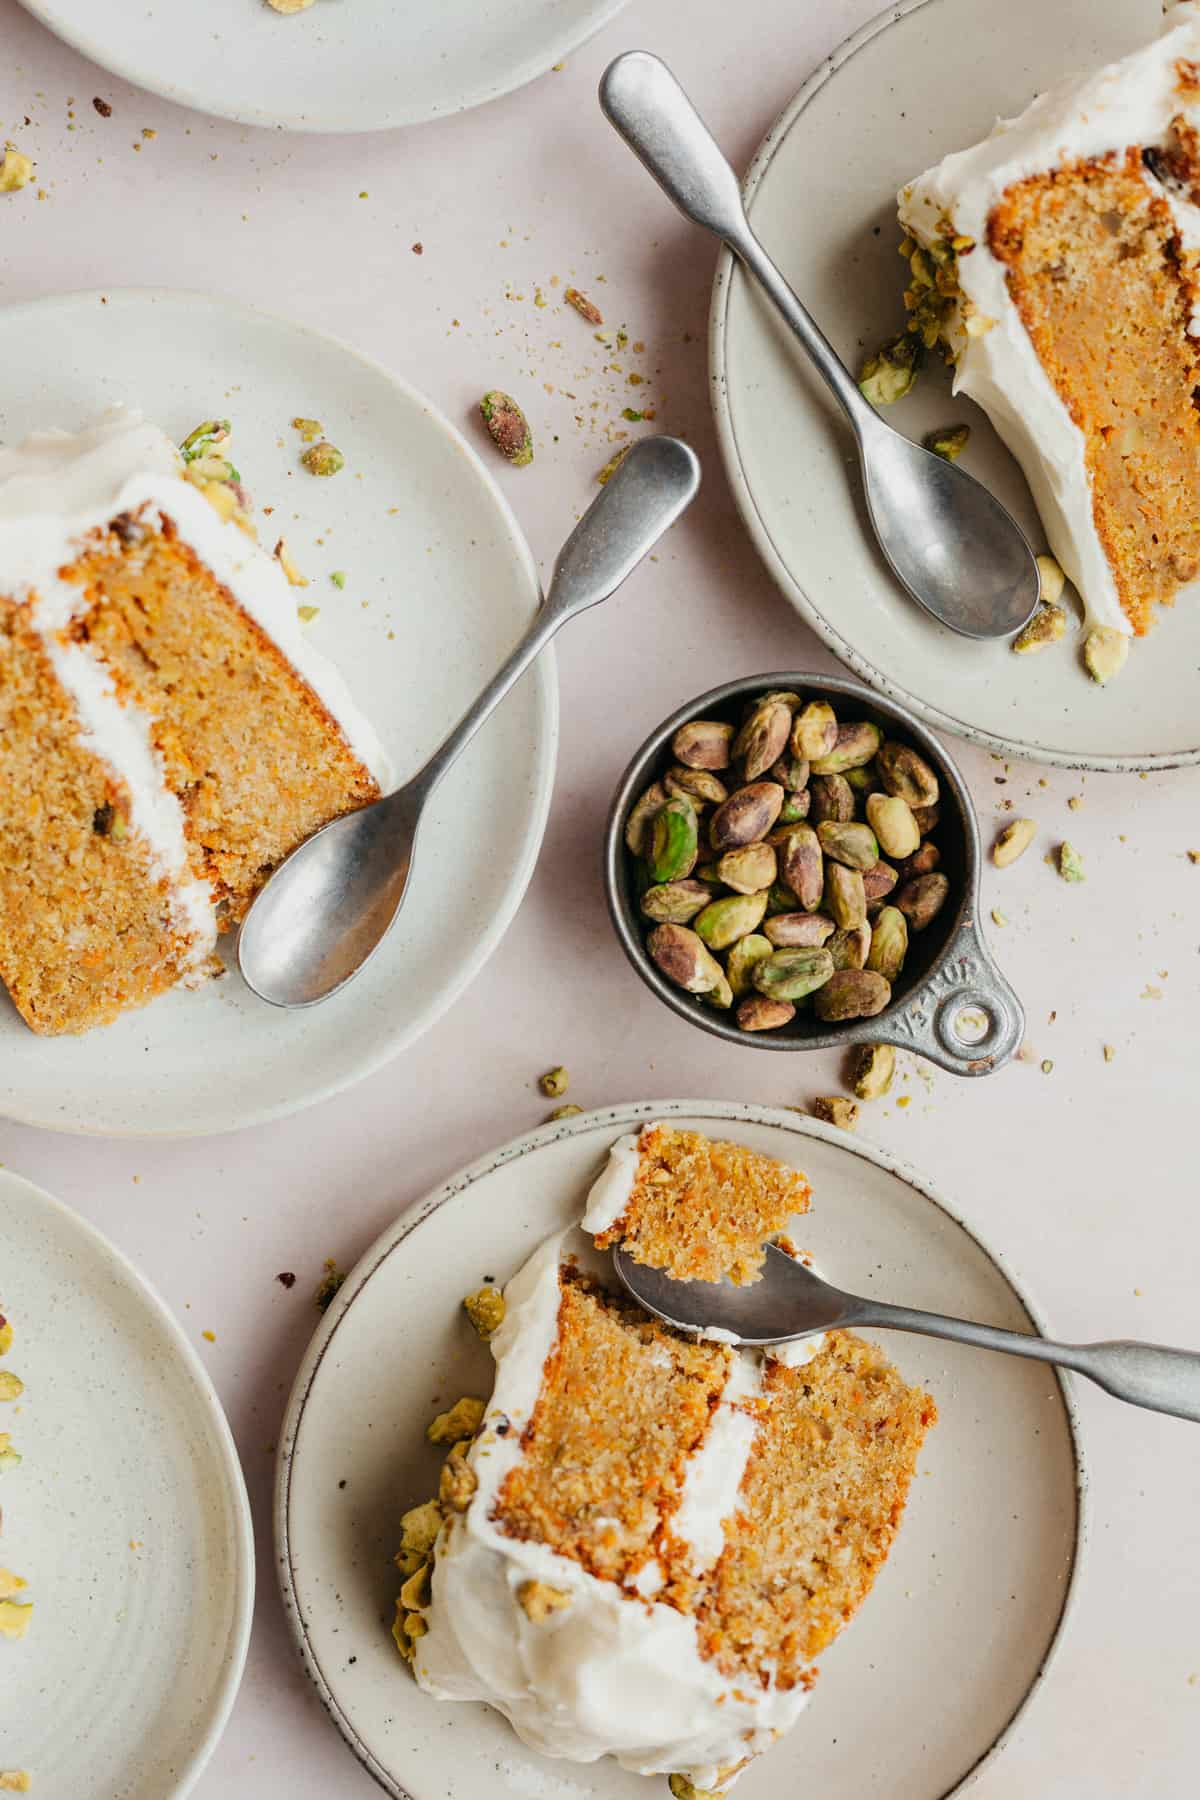 Three small plates with slices of carrot cake on each plate and a small spoon. There is a metal measuring cup filled with pistachios.